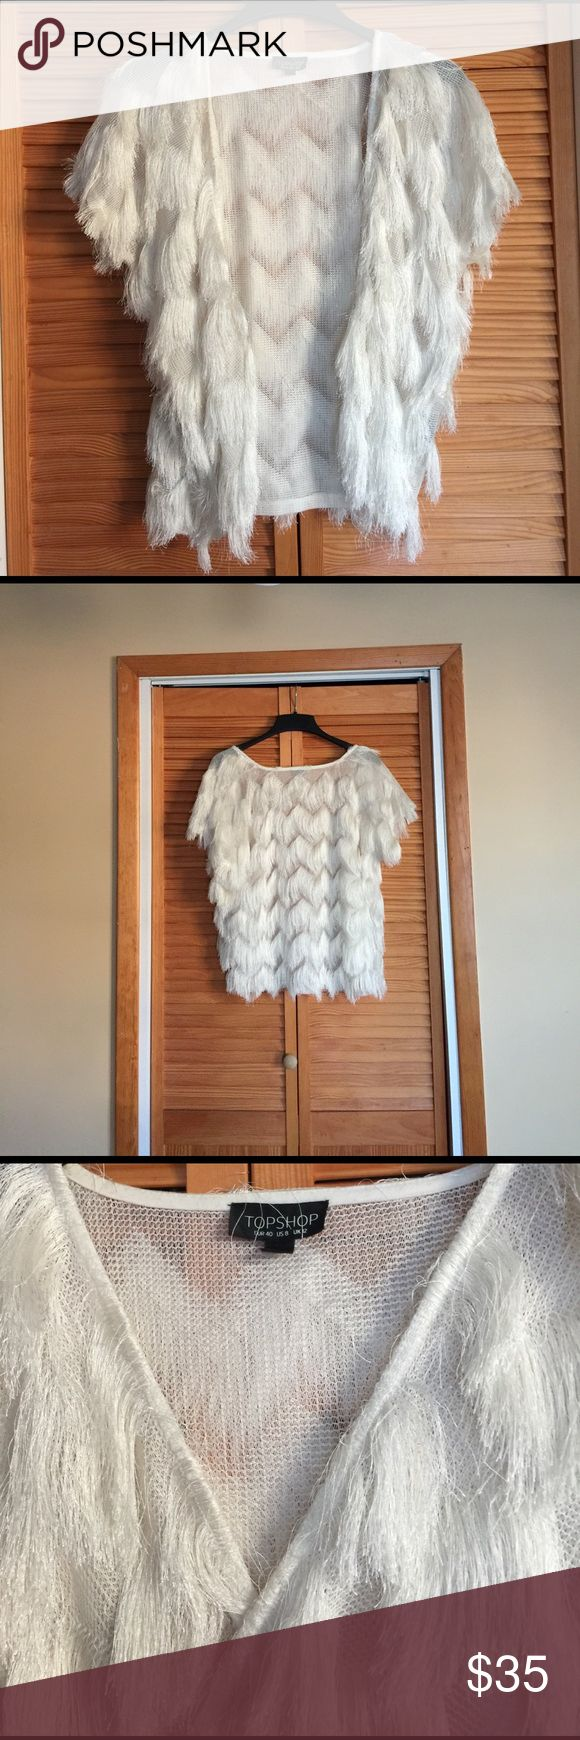 Topshop top Unique feather tassel cape, over an evening dress for a cool summer night; great dress down with Jean as well. It's a piece you'll wear again and again. Sold out Topshop piece. Size does matter since it's open front . It works for size 6-12 Topshop Tops